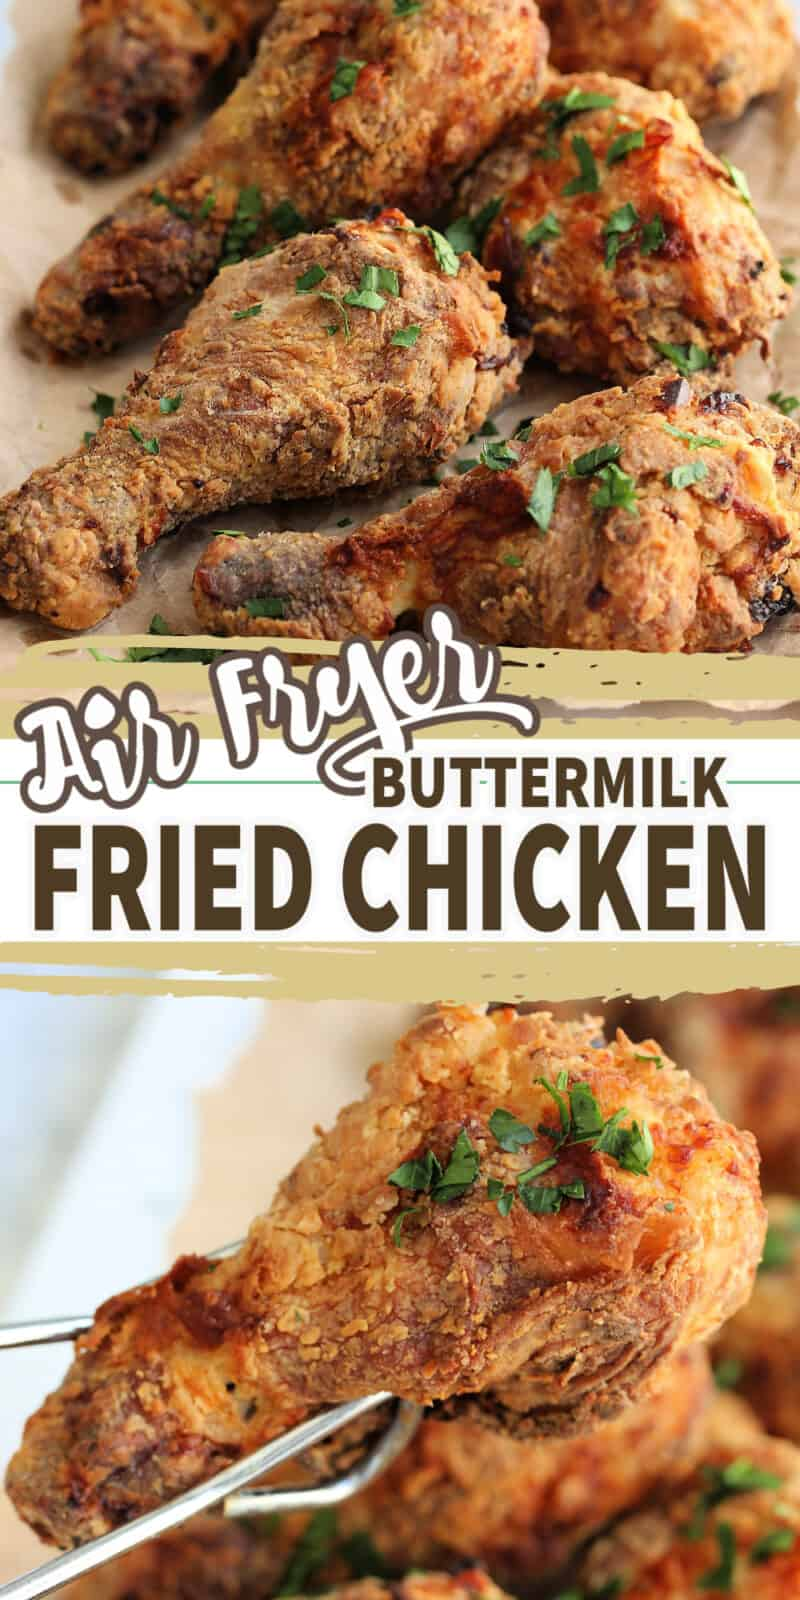 fried chicken drumsticks with text